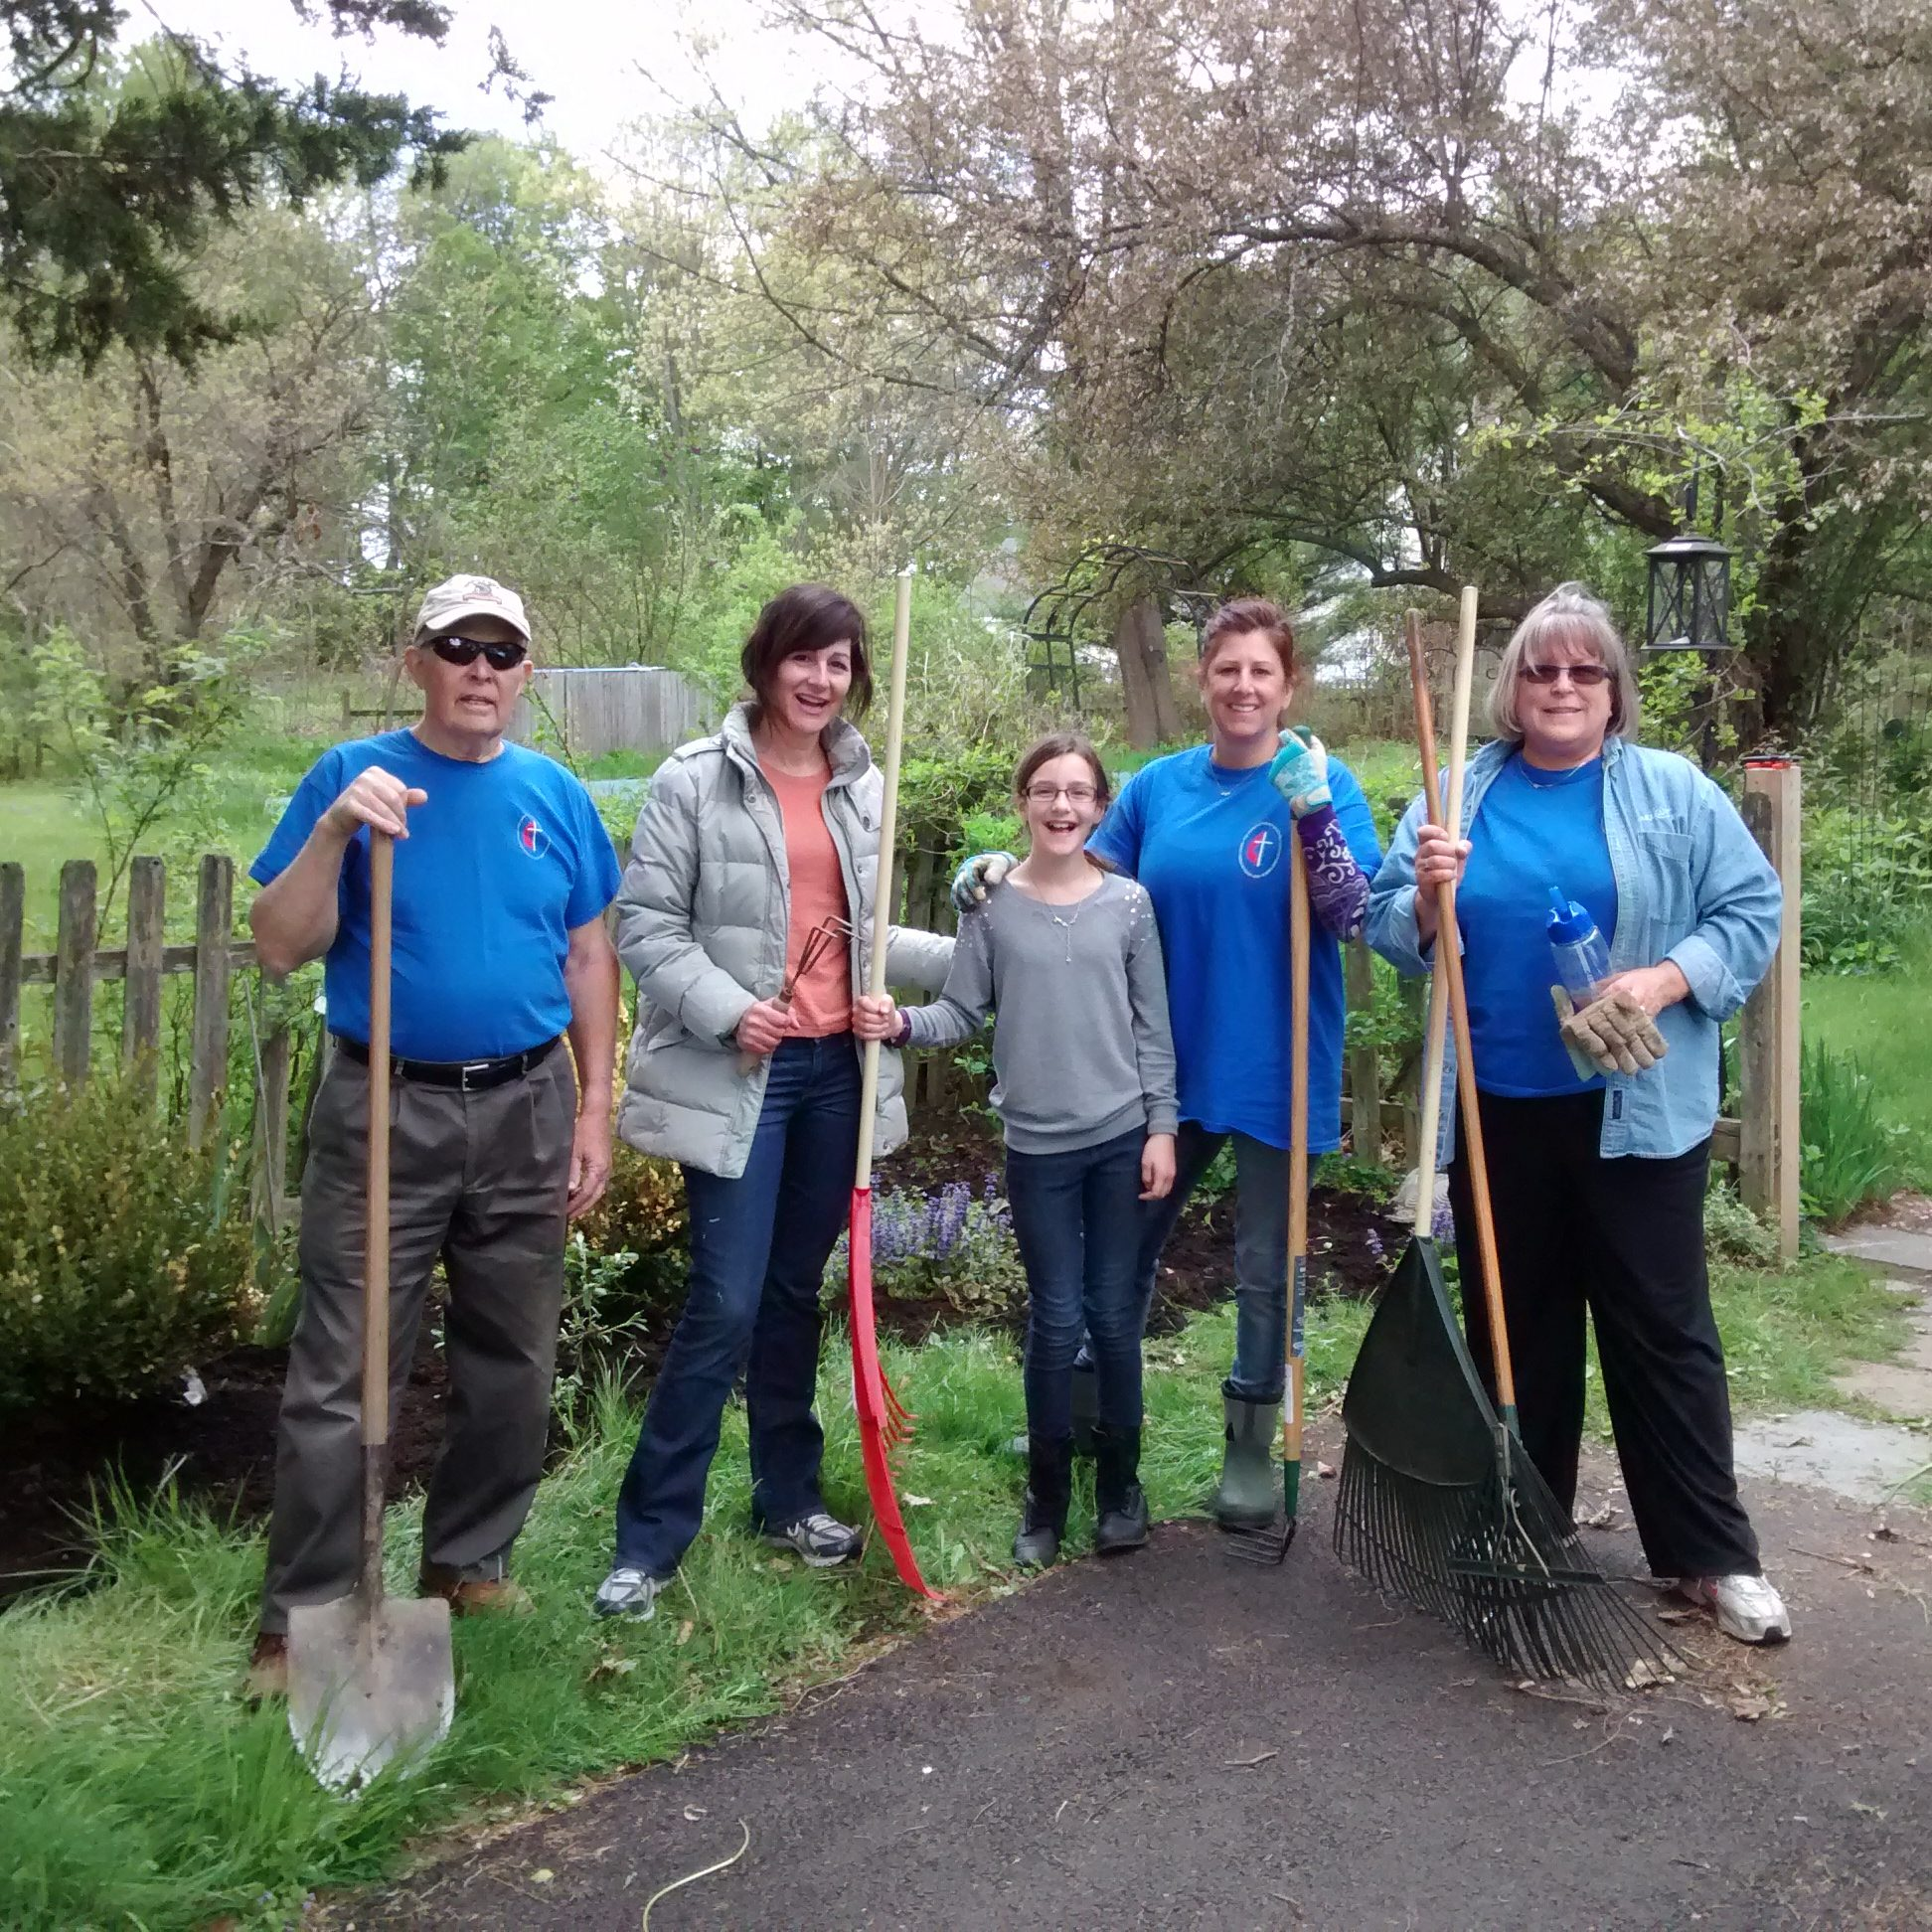 Church members with rakes and shovels